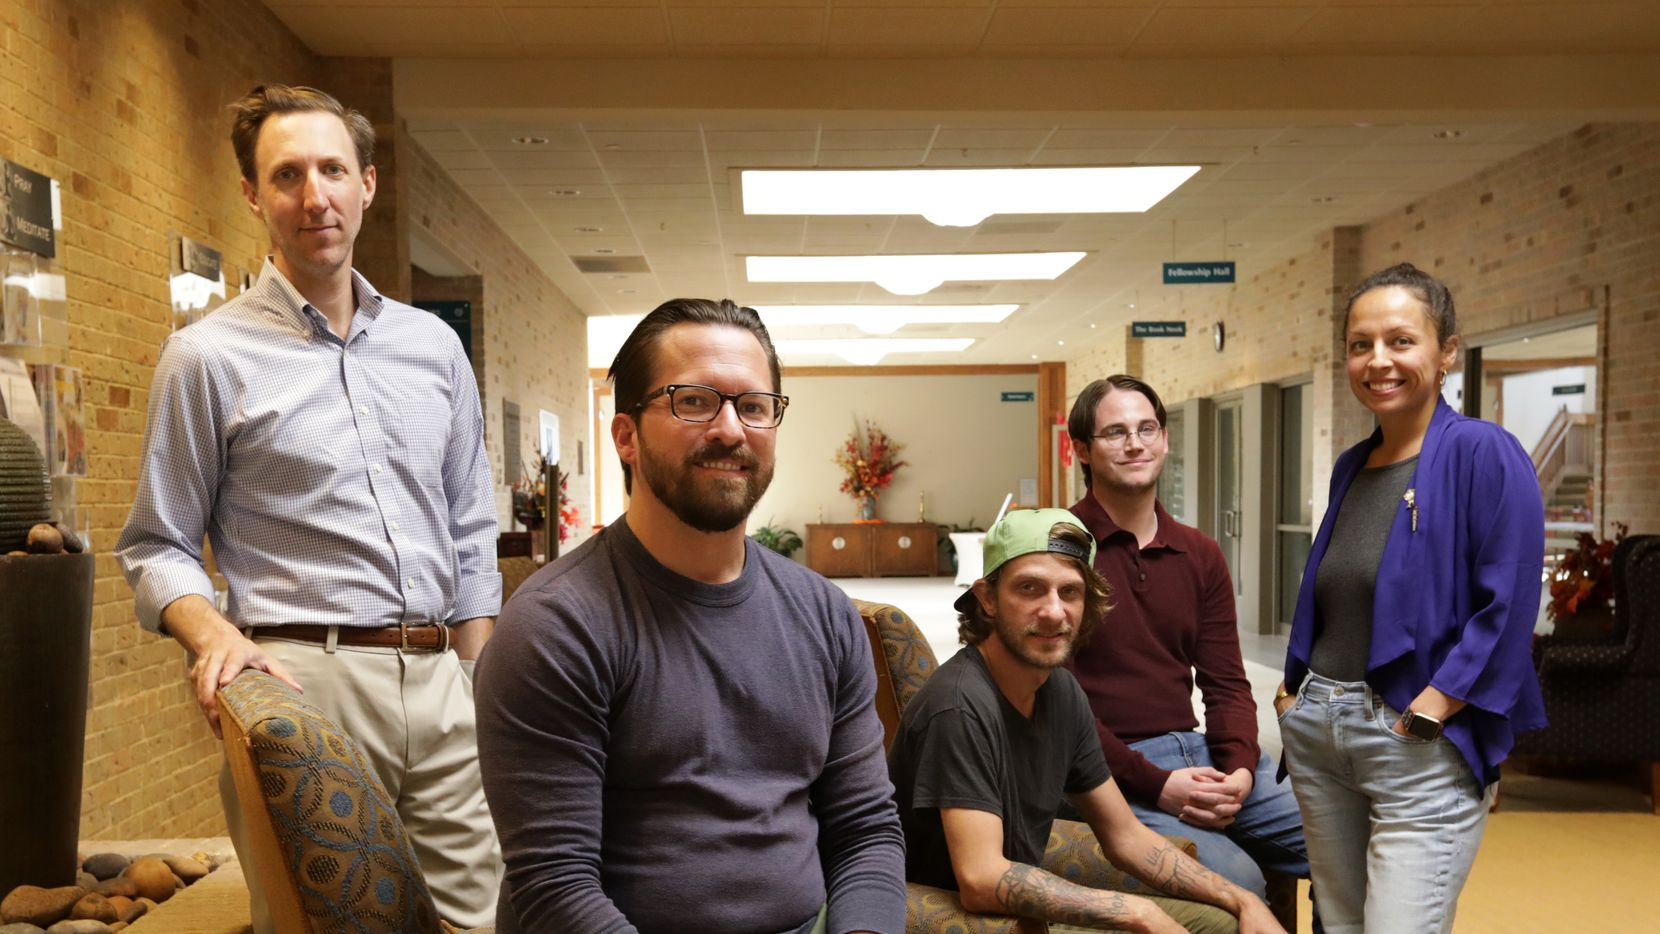 From left: Brandon Friedman, Ryan Gause, Wes Elliott, Tristan Seikel and Jessica Pallett of Decriminalize Nature Dallas hosted a town hall meeting at Unity of Dallas on Oct. 13, 2019.